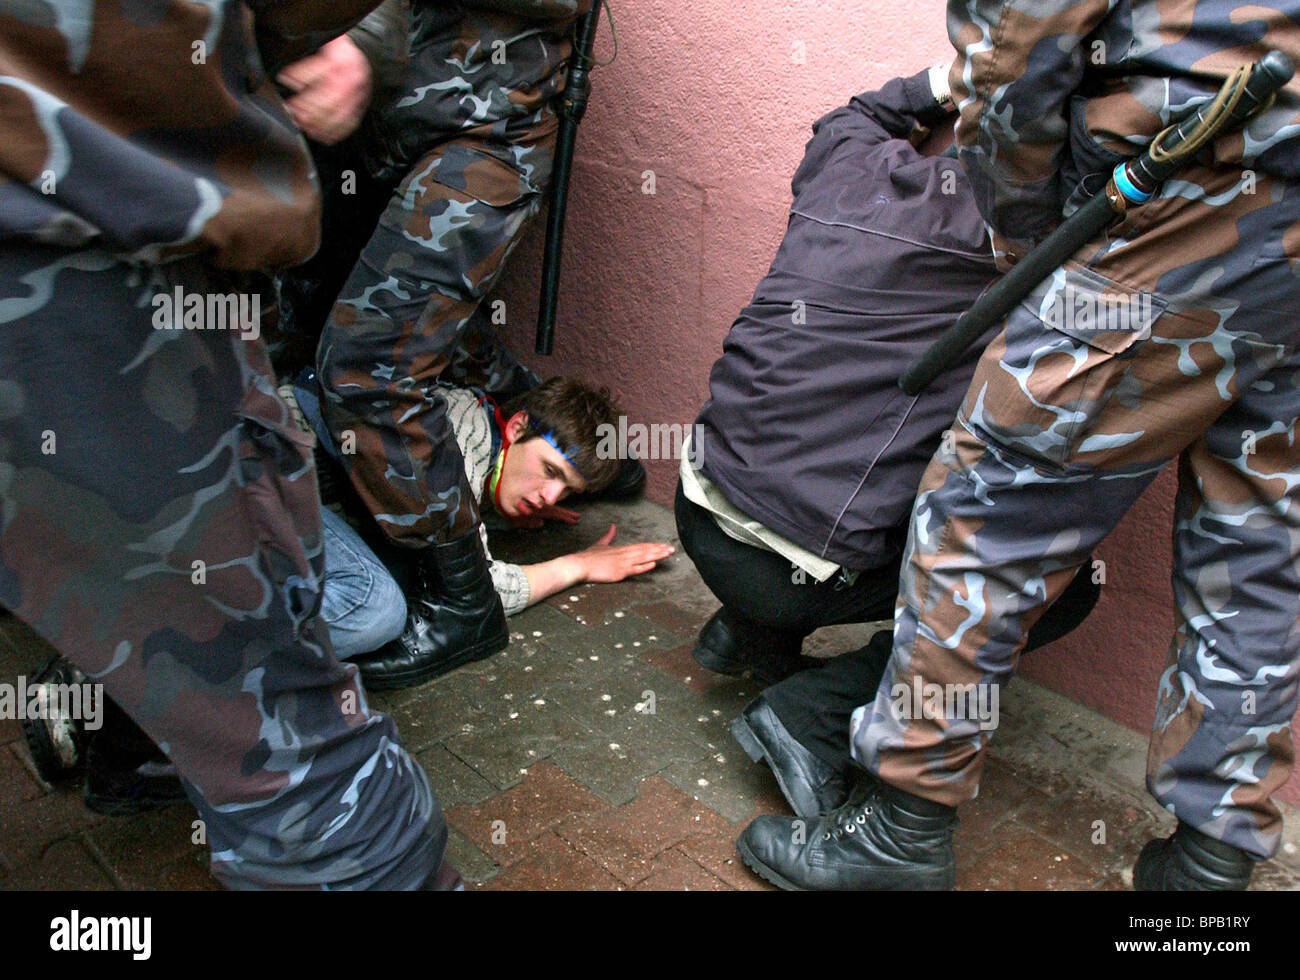 Police disperse Belarus Chernobyl rally, Russians among detained protesters - Stock Image